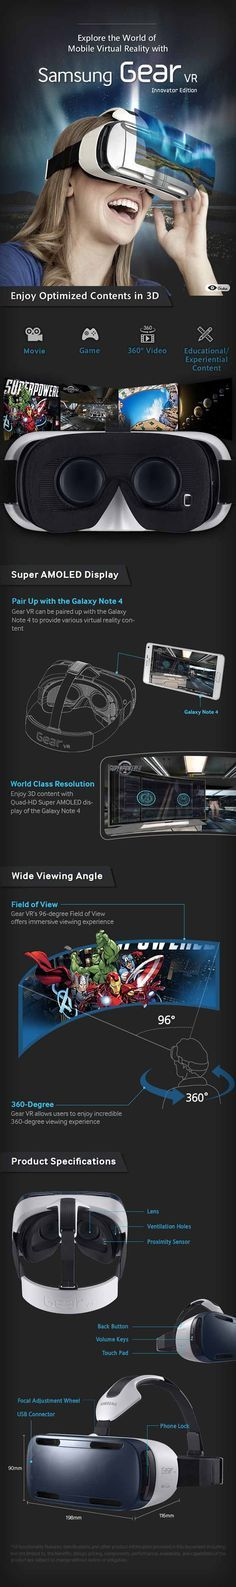 Samsung Galaxy Gear VR (Explore the world of mobile virtual reality) [Virtual Reality: http://futuristicnews.com/tag/virtual-reality/ VR Headsets: http://futuristicshop.com/category/video-glasses-2/]